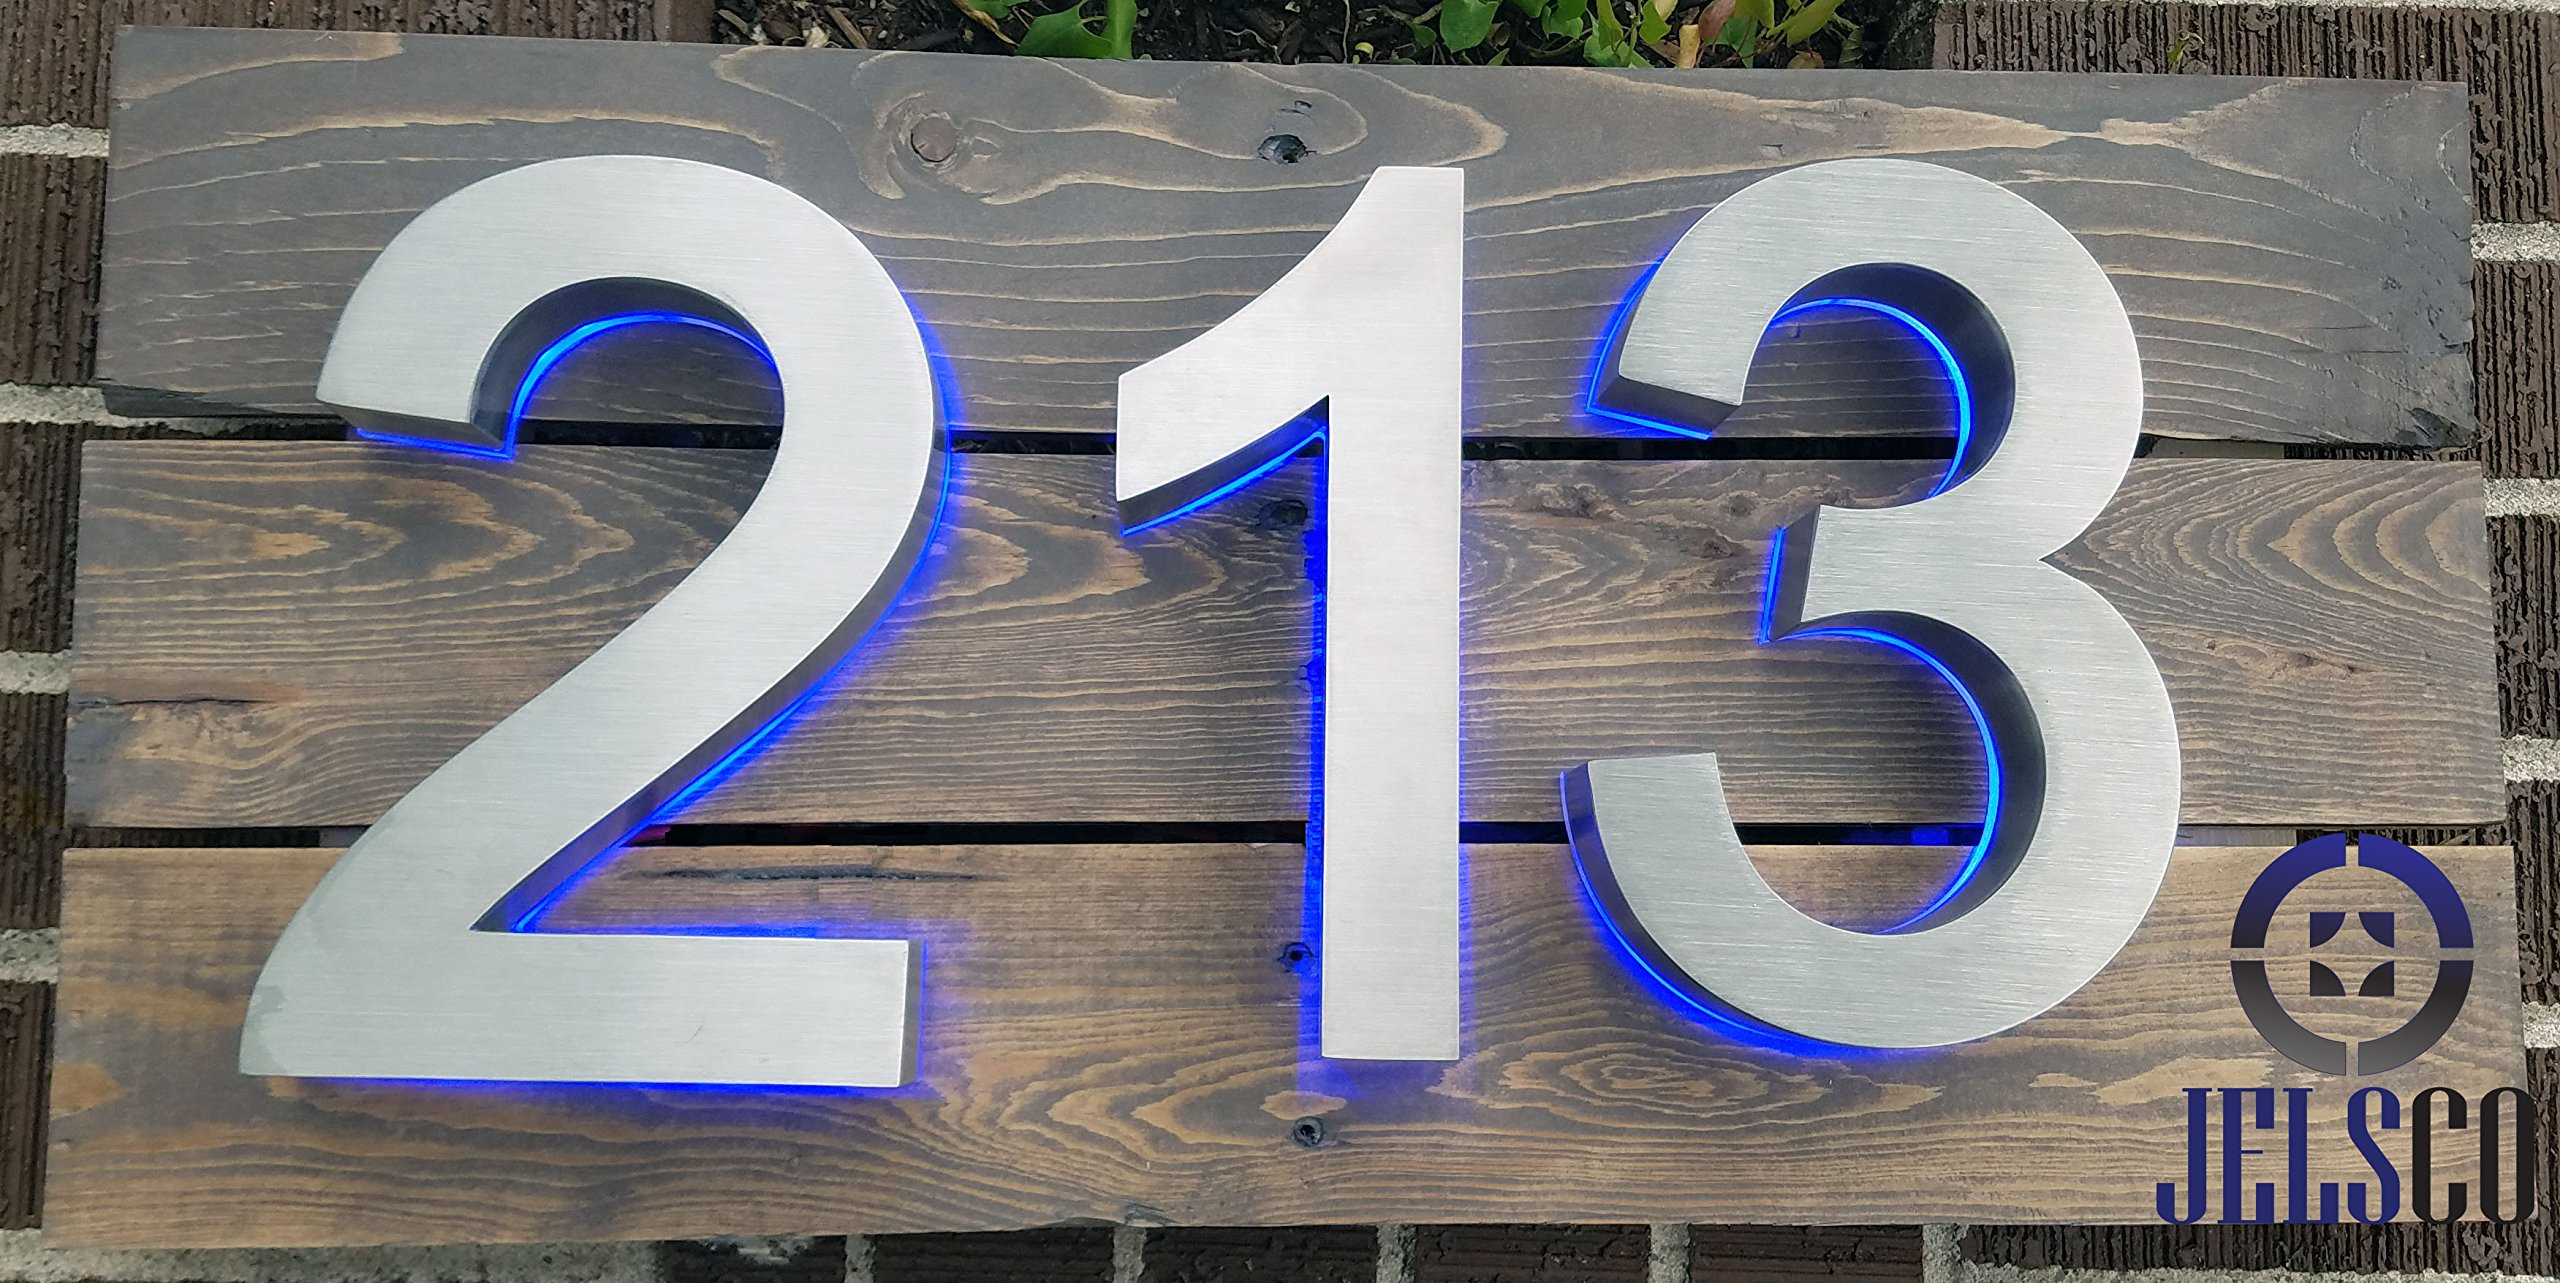 Backlit LED House Numbers (8 Inch Blue) Big, Modern Address Signs for Homes | Soft, Exterior Glow | Brushed Stainless-Steel Finish | Weather Resistant, Durable, Wired | by JELSCO (9) by JELSCO (Image #6)